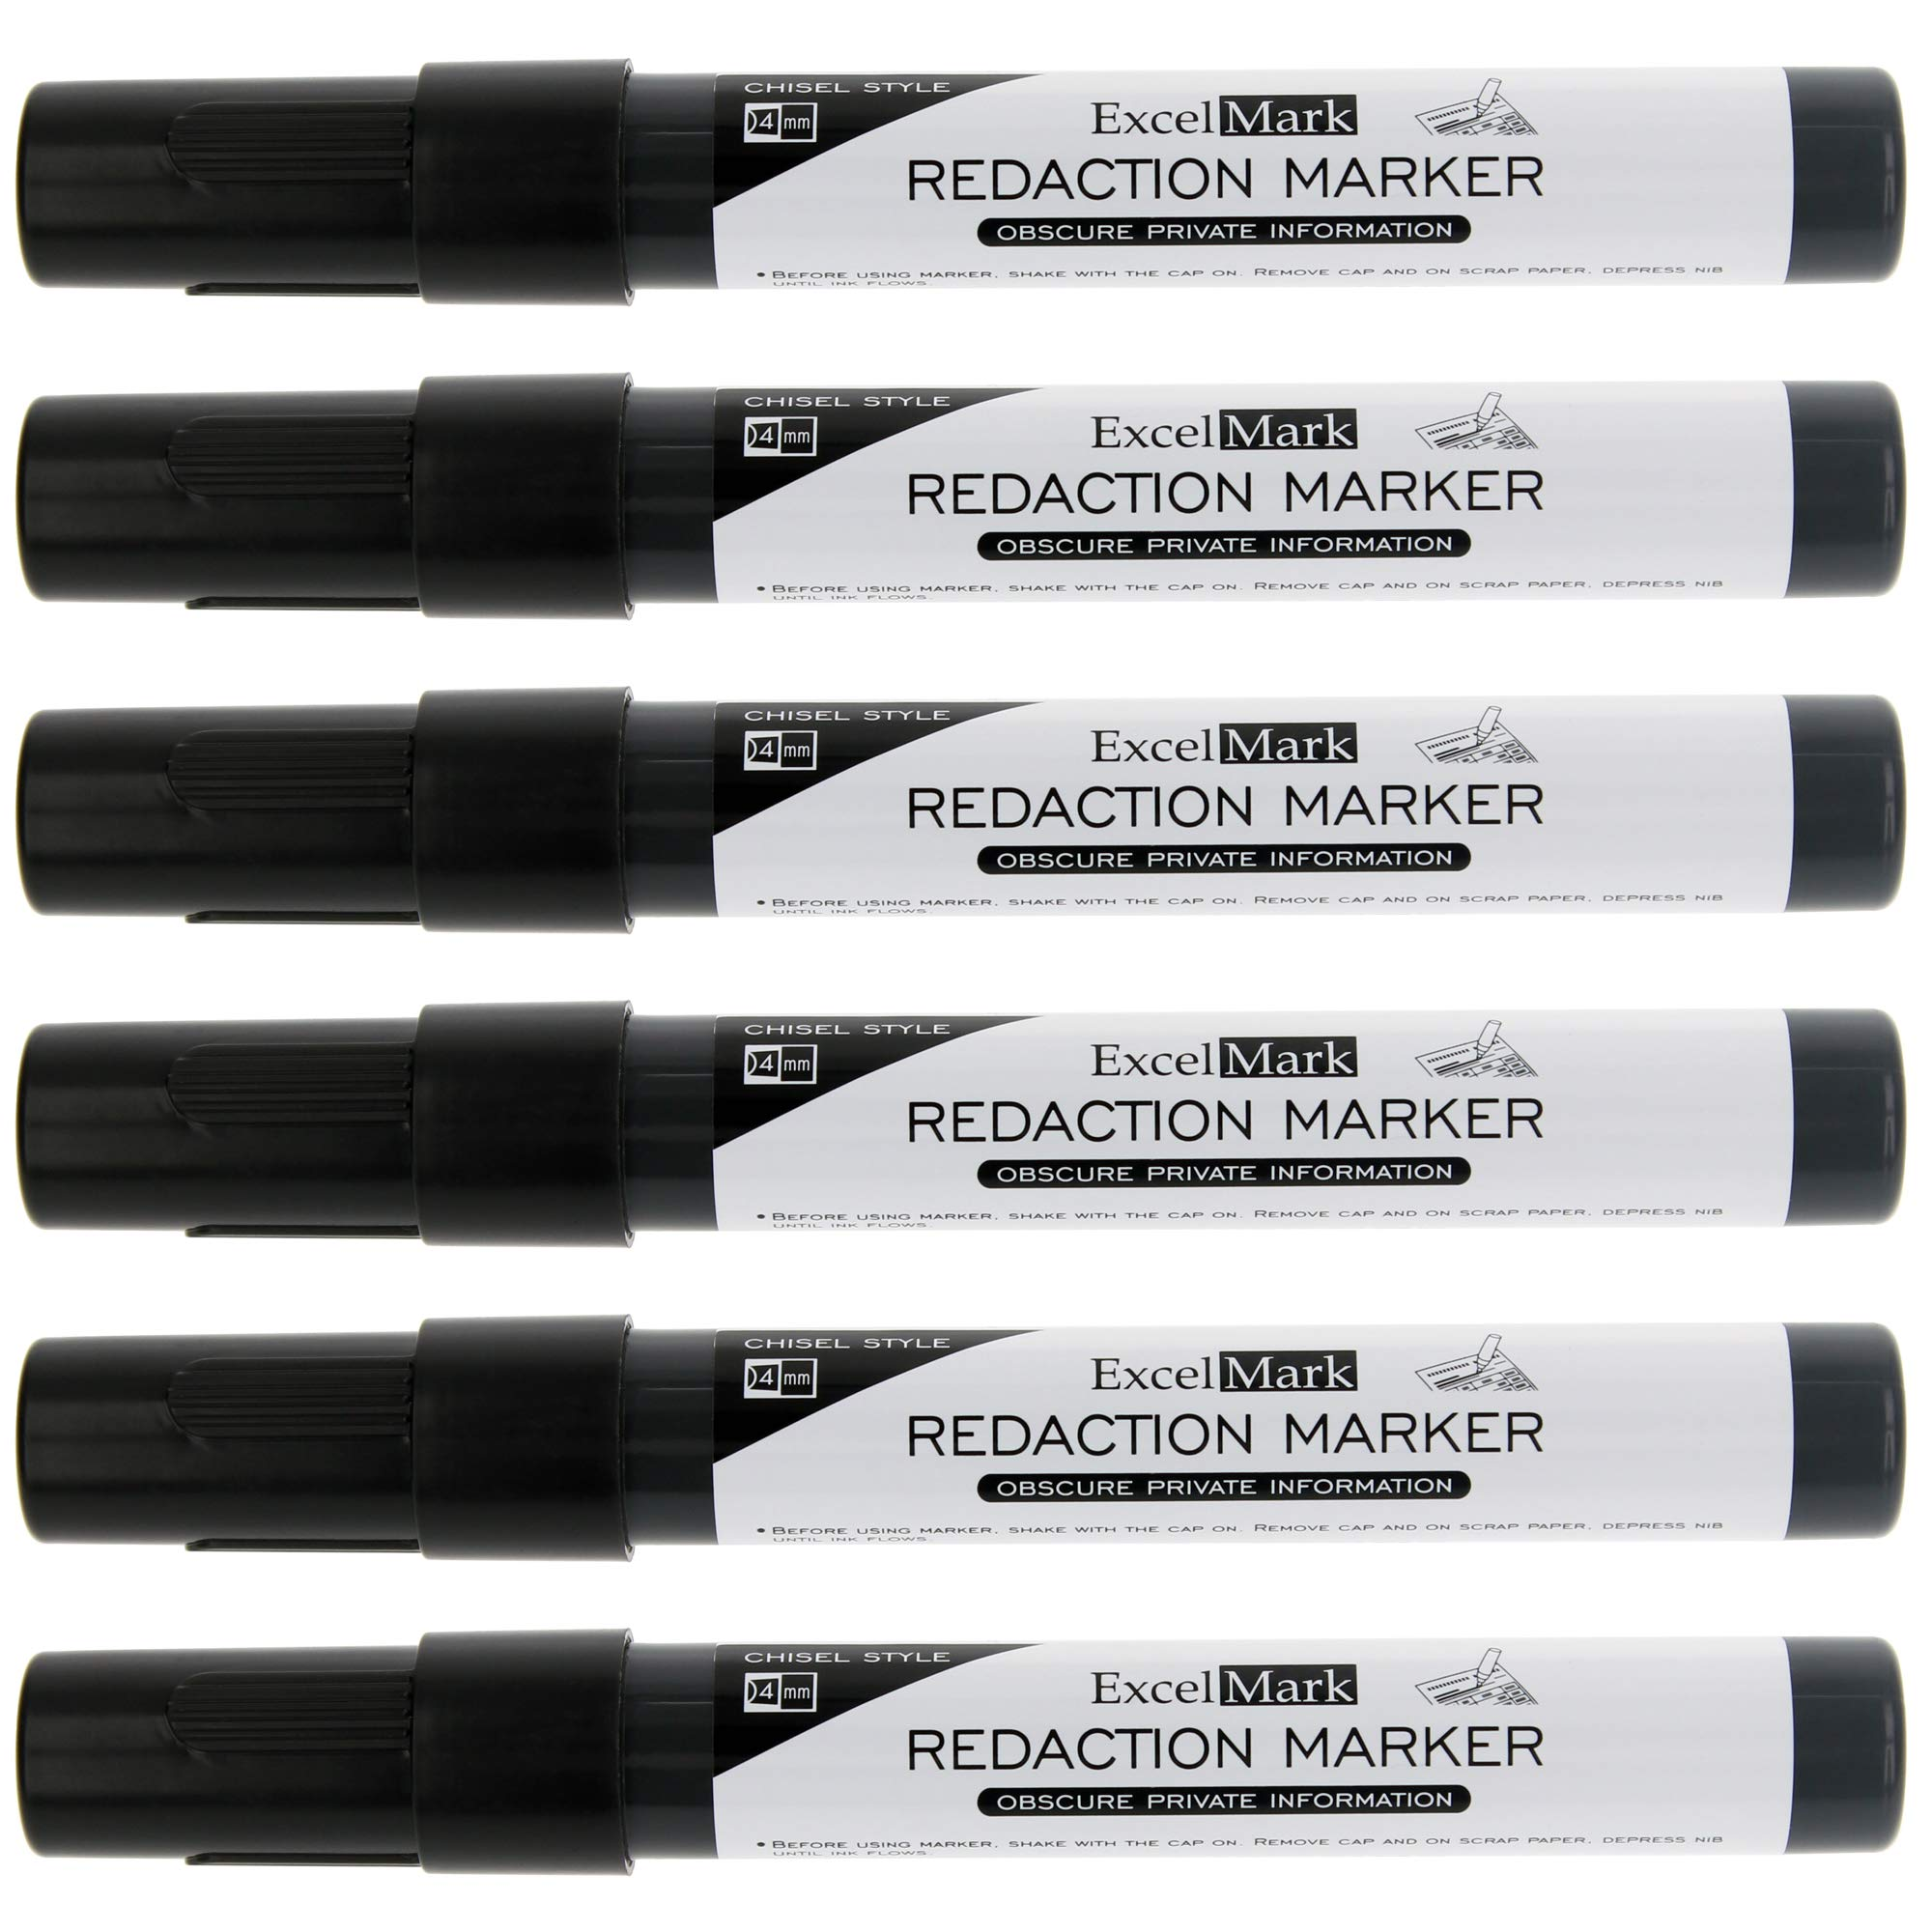 ExcelMark Security Redaction Marker - Blackout Private Information With Our Convenient Redacting Pen (6 Markers) by ExcelMark (Image #1)